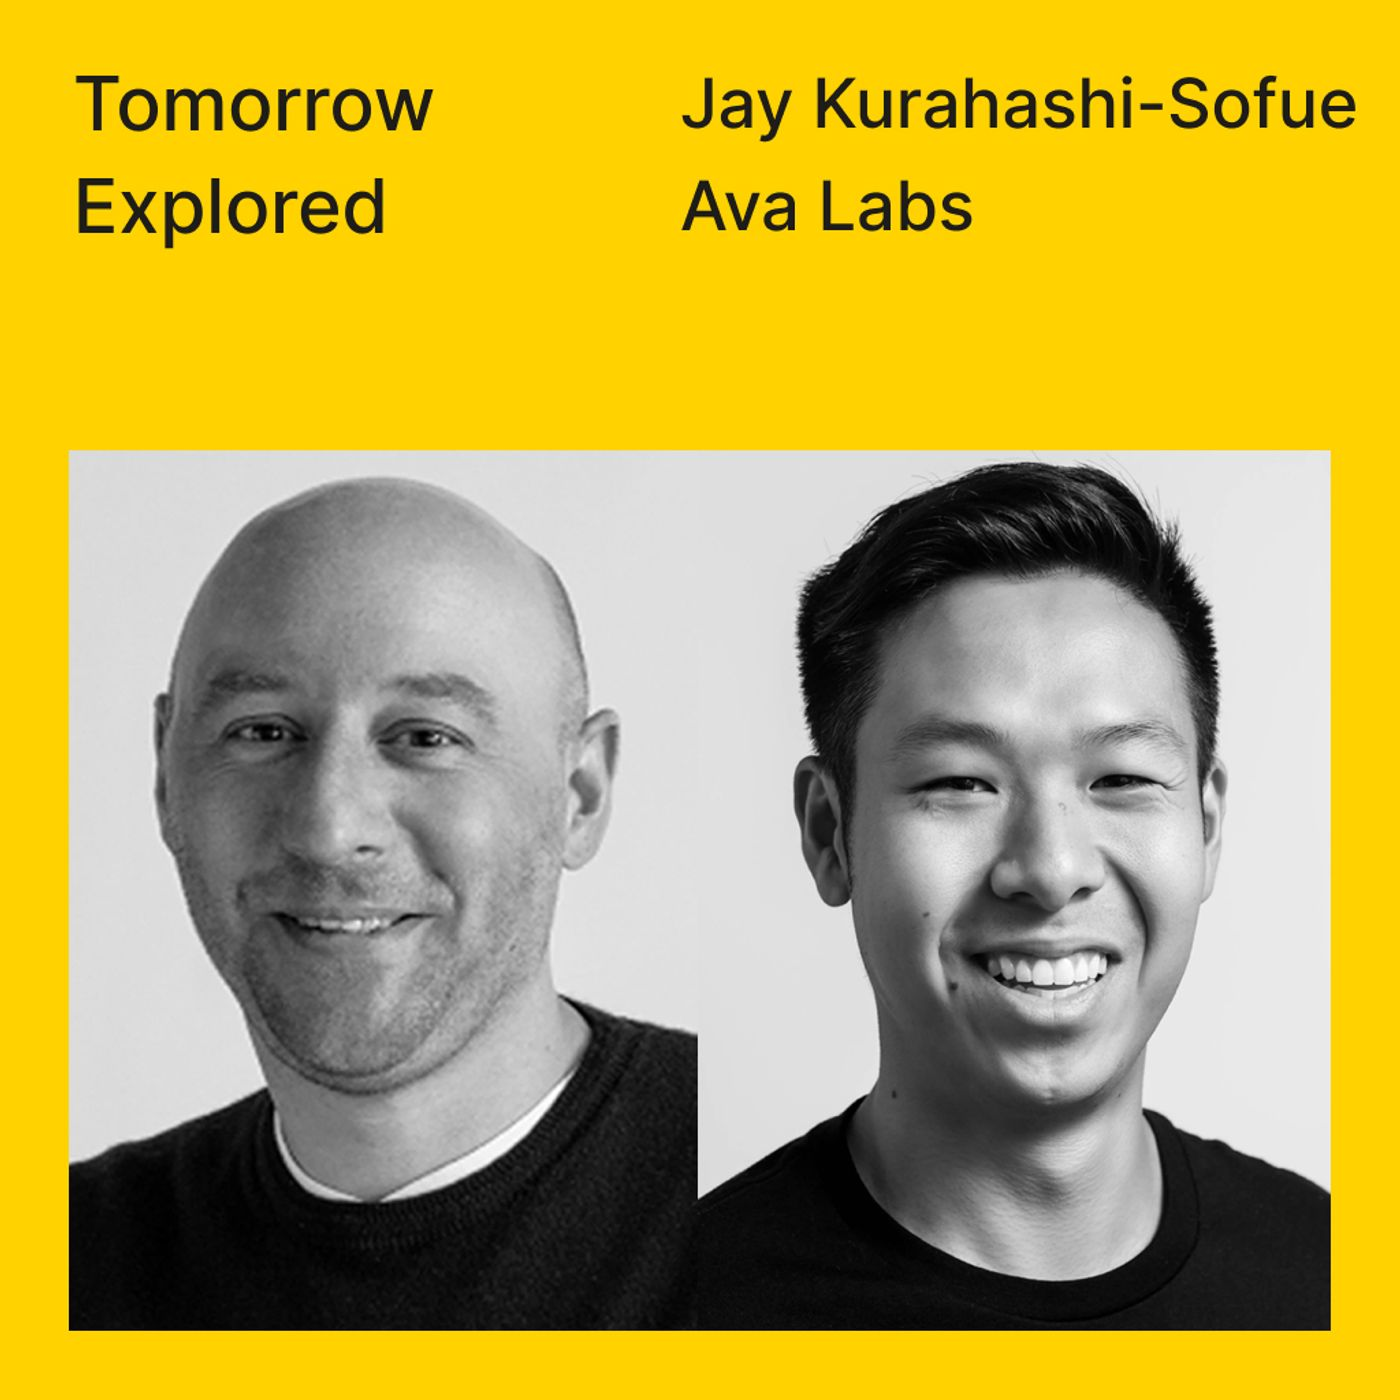 How to build a leading DeFi brand – Avalanche, with Jay Kurahashi-Sofue of Ava Labs